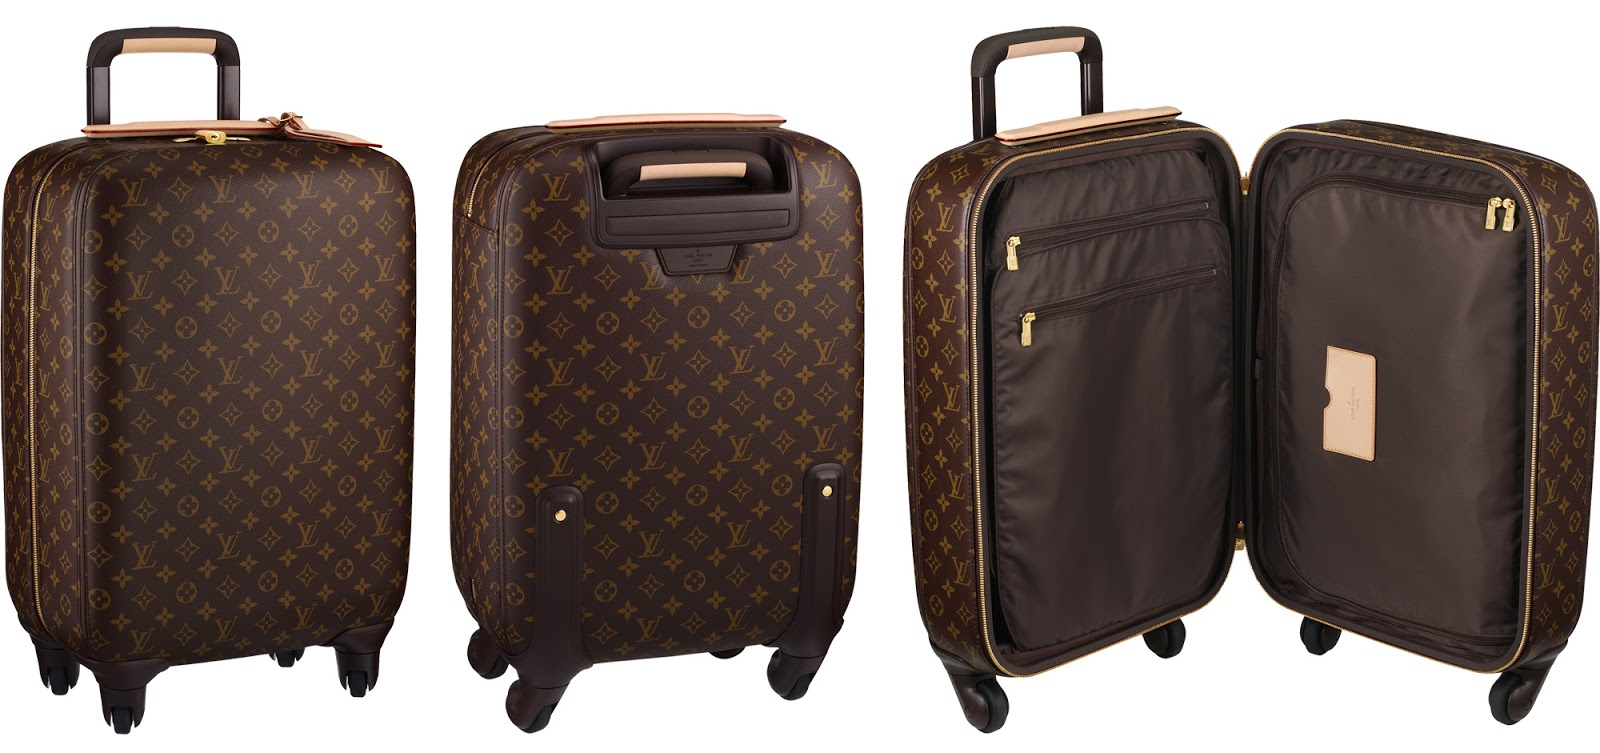 Passion For Luxury : Louis Vuitton Zephyr 55 Luxury Travel ...